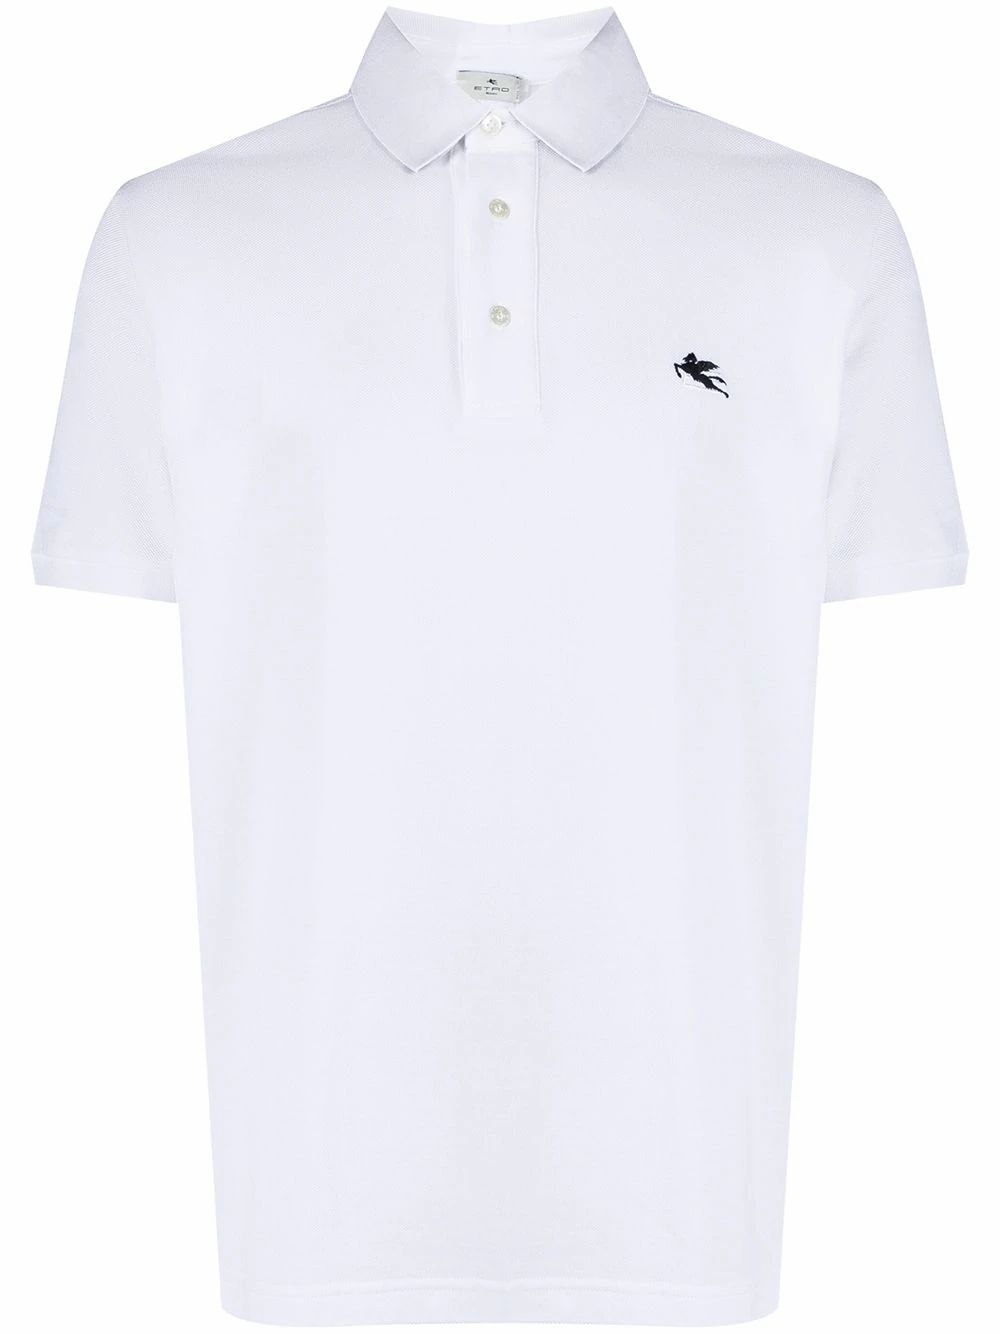 Etro ETRO MEN'S WHITE COTTON POLO SHIRT